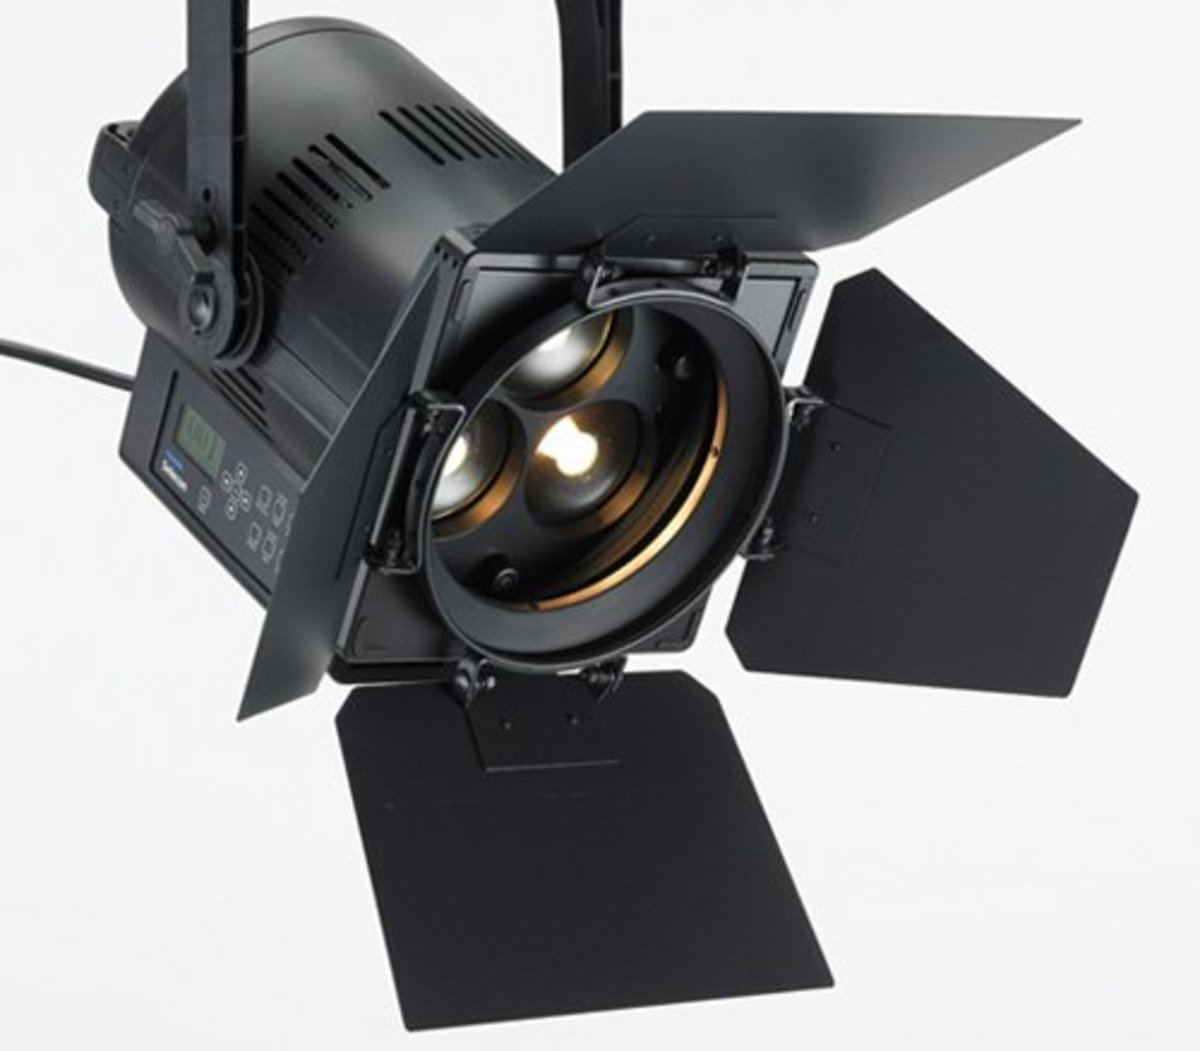 IMAGE 1: Barn Doors attached to a lighting instrument.